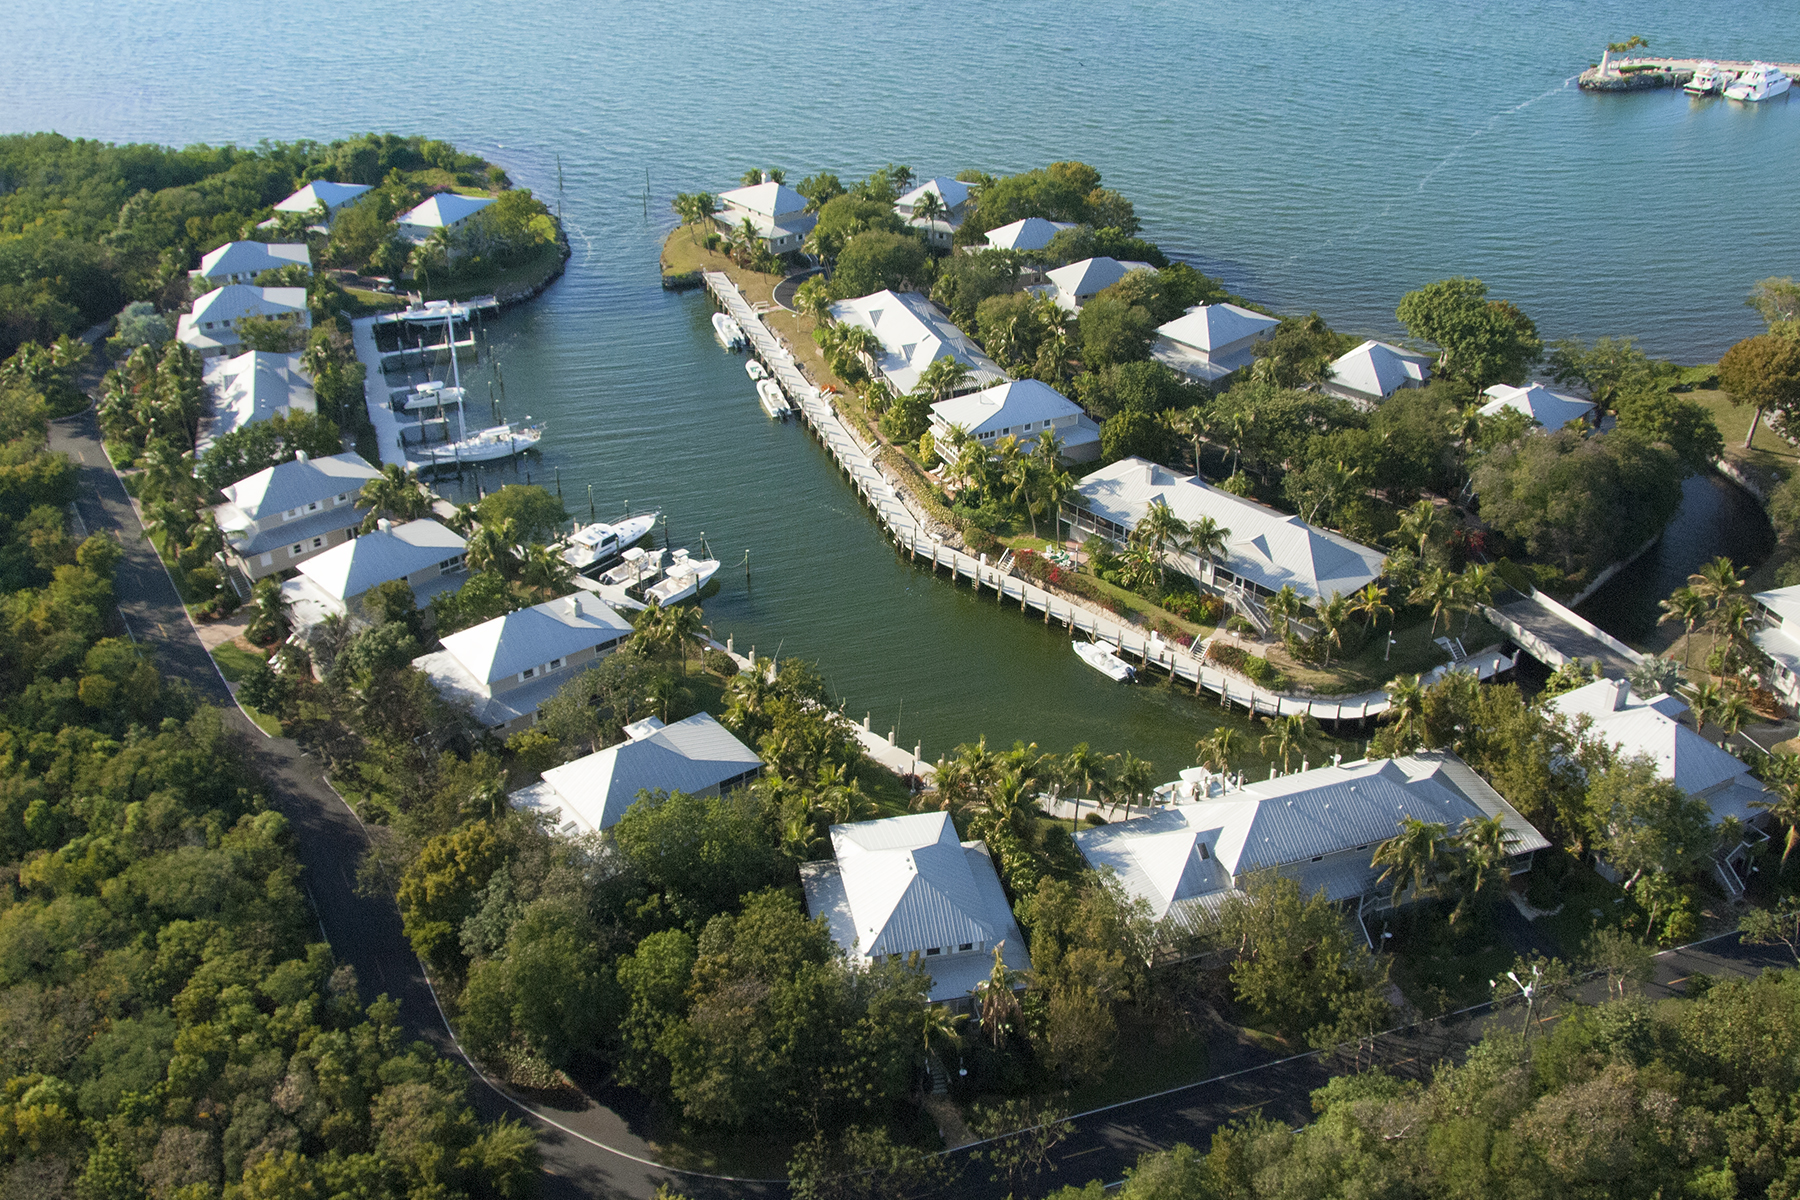 Villa per Vendita alle ore Waterfront Cottage - Key Largo Anglers Club 13 South Marina Drive Key Largo, Florida 33037 Stati Uniti